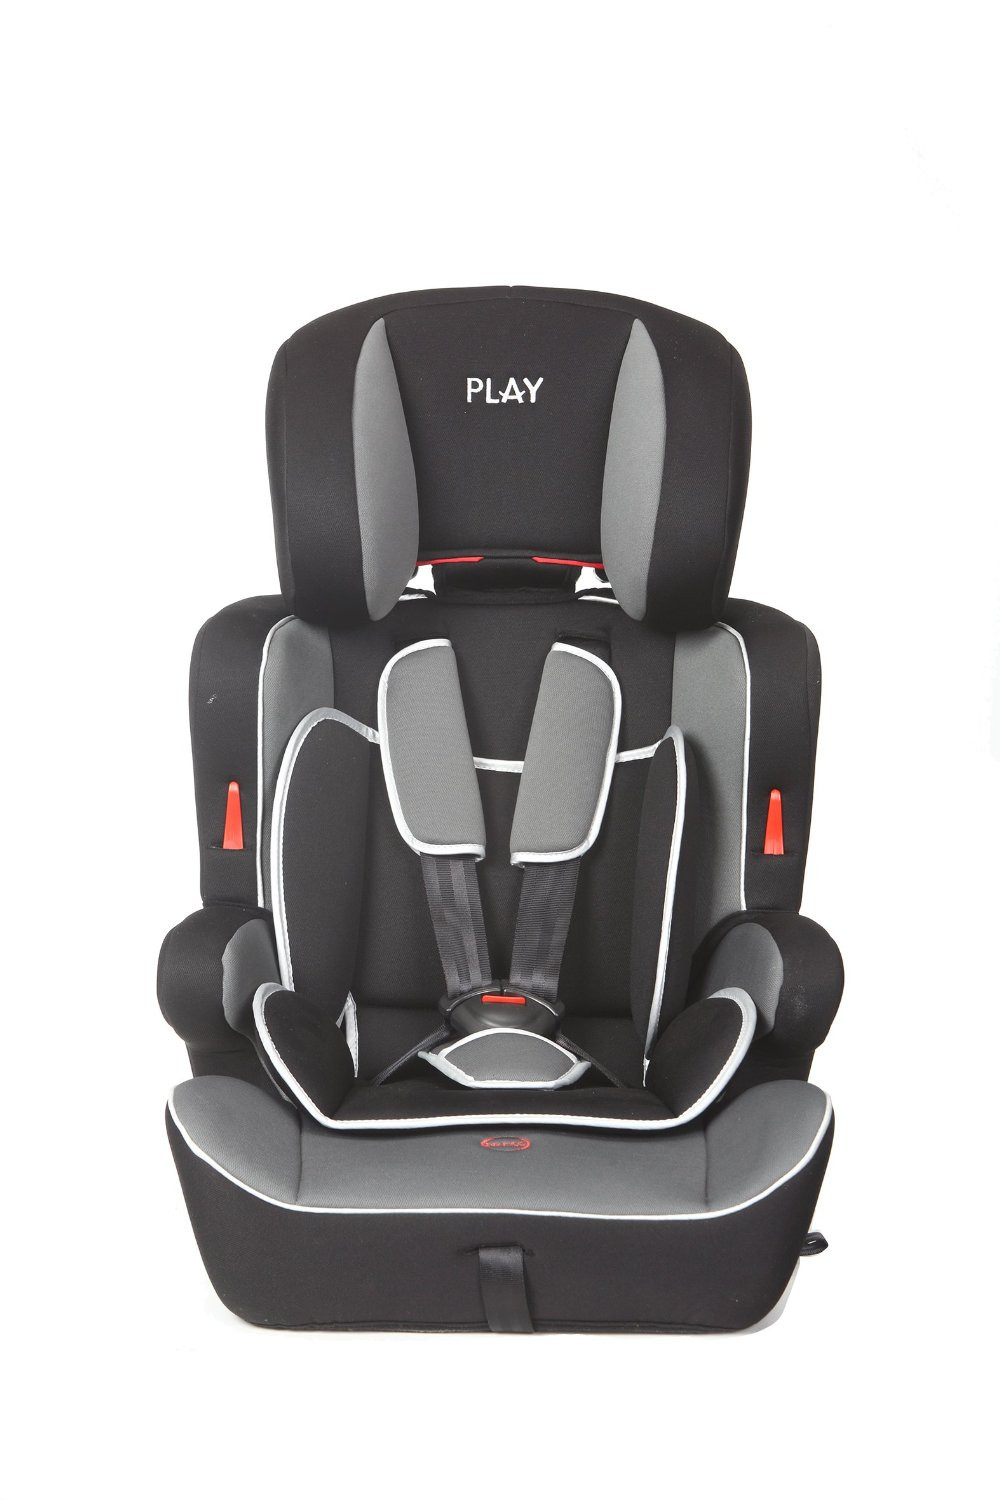 Silla de coche play safe ten grupo 1 2 3 casualplay for Silla grupo 0 1 2 3